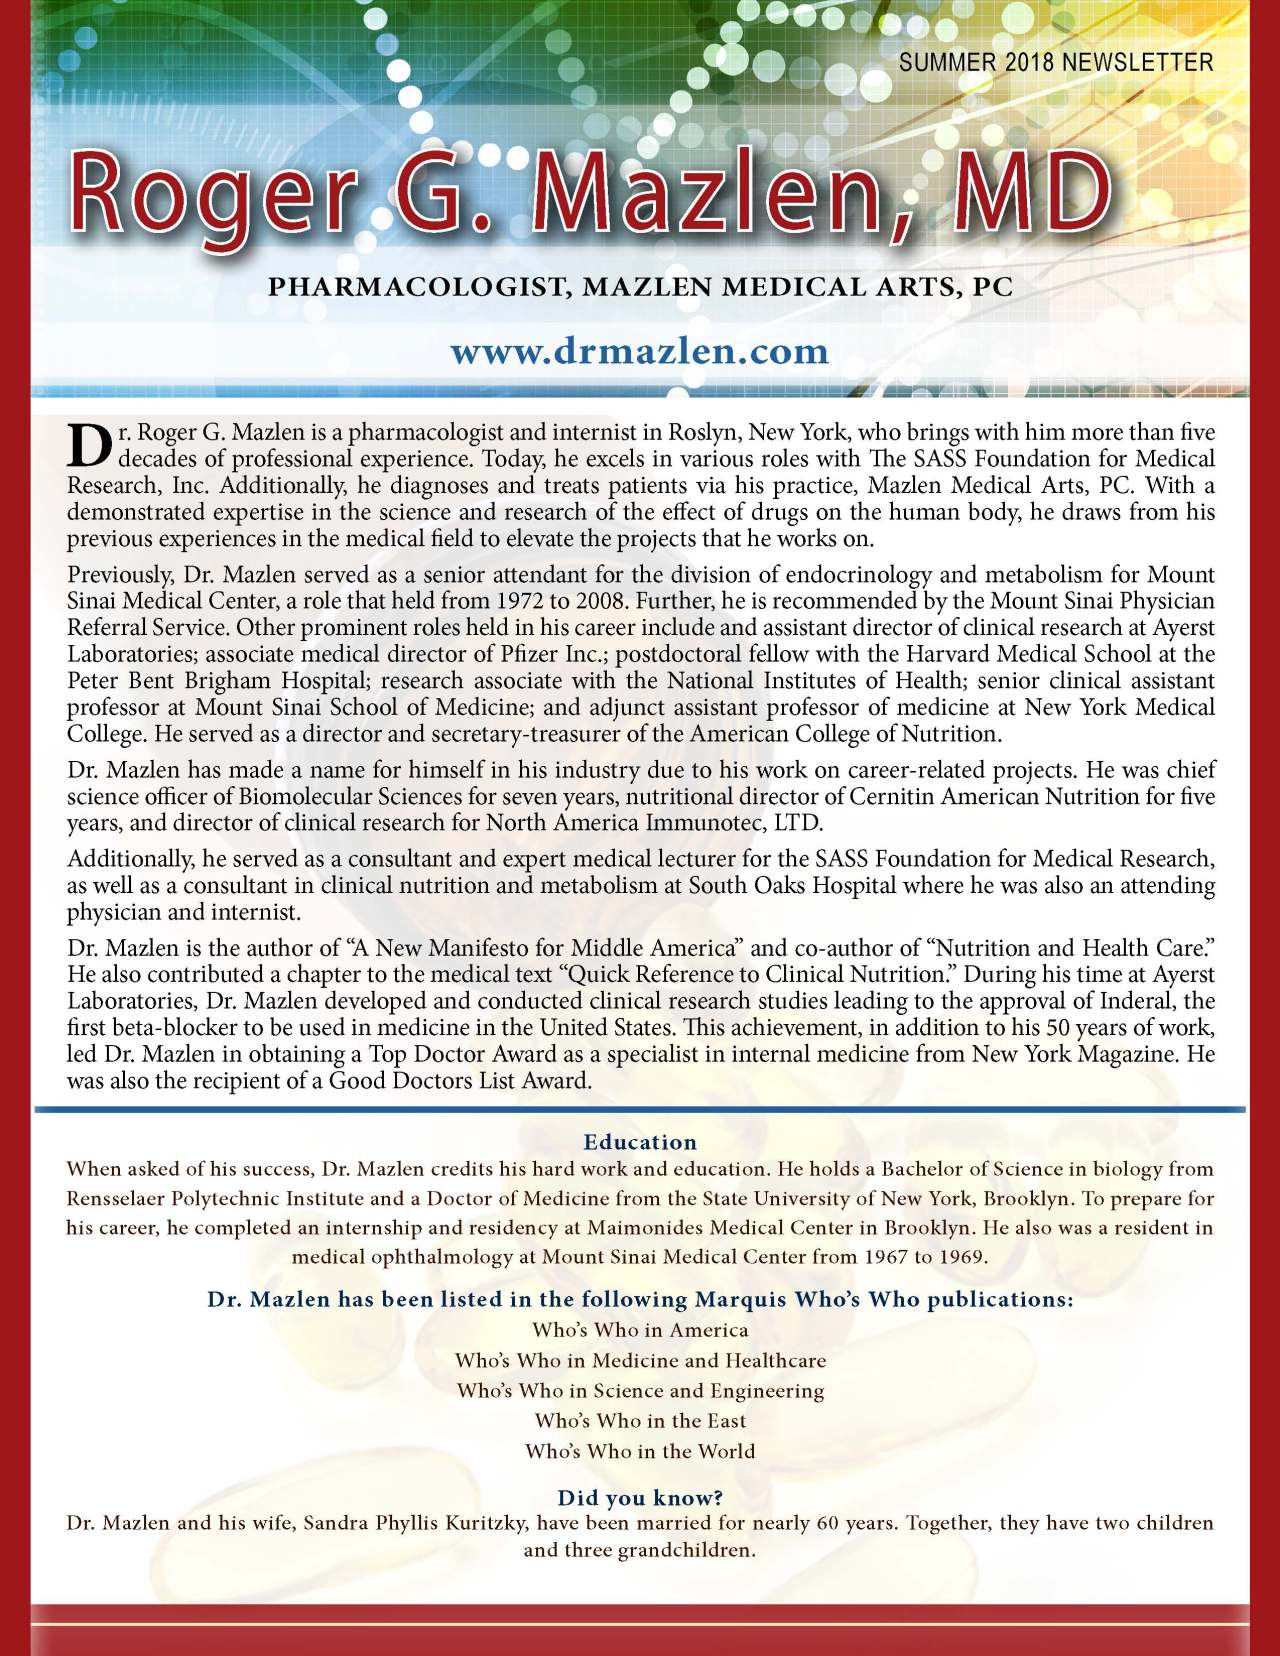 Mazlen, Roger 2139619_2837451 Newsletter REVISED.jpg